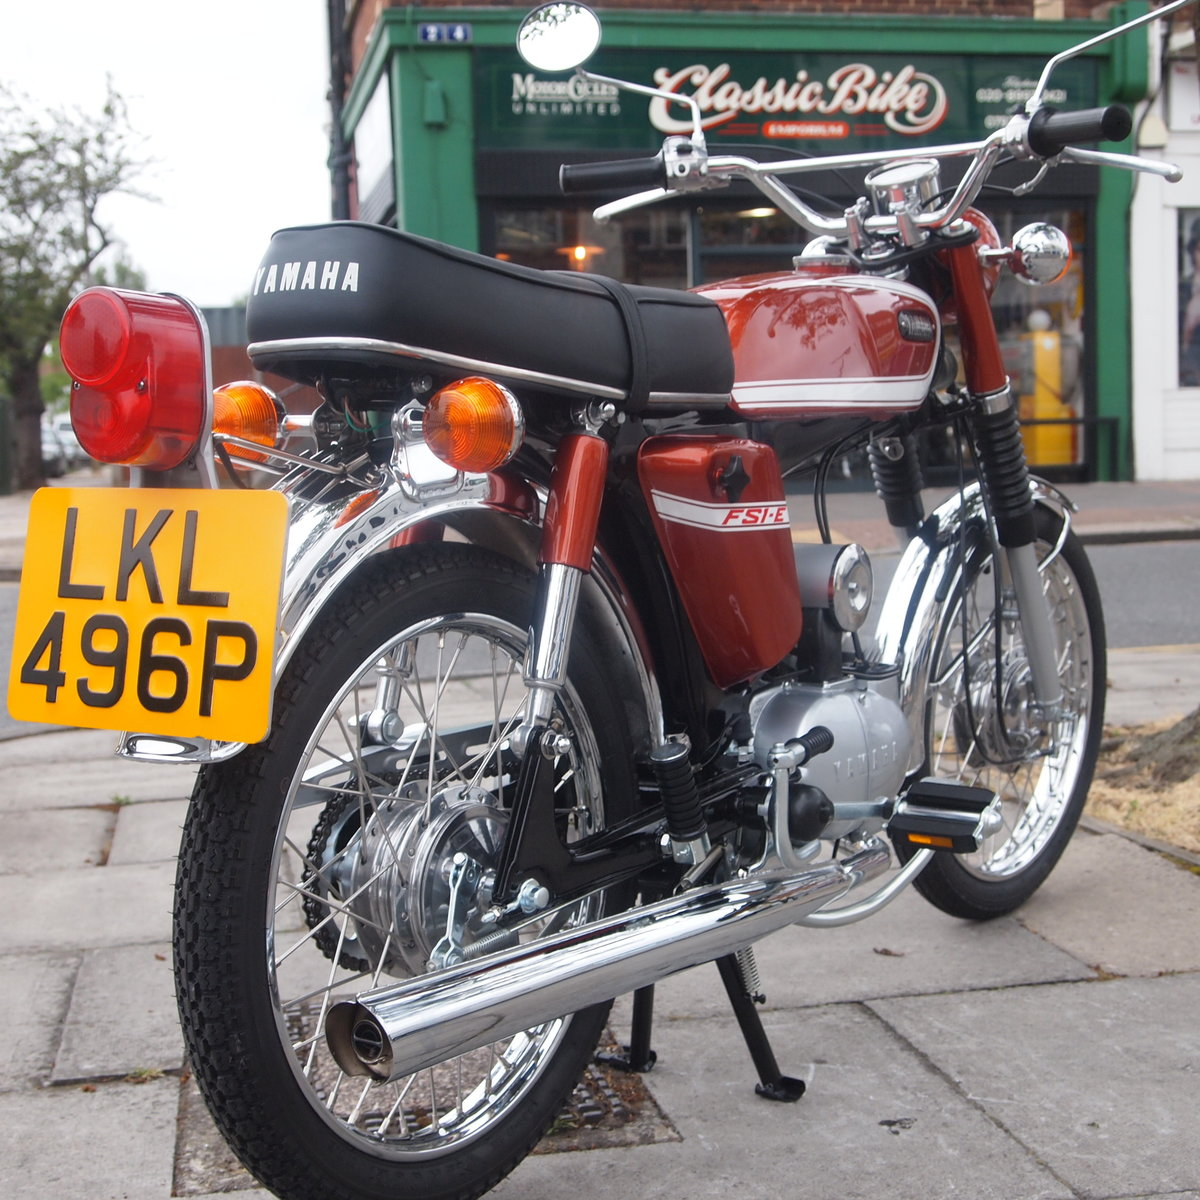 1975 Yamaha FS1E Genuine Rare UK Pedal Moped, Like New. For Sale (picture 1 of 6)